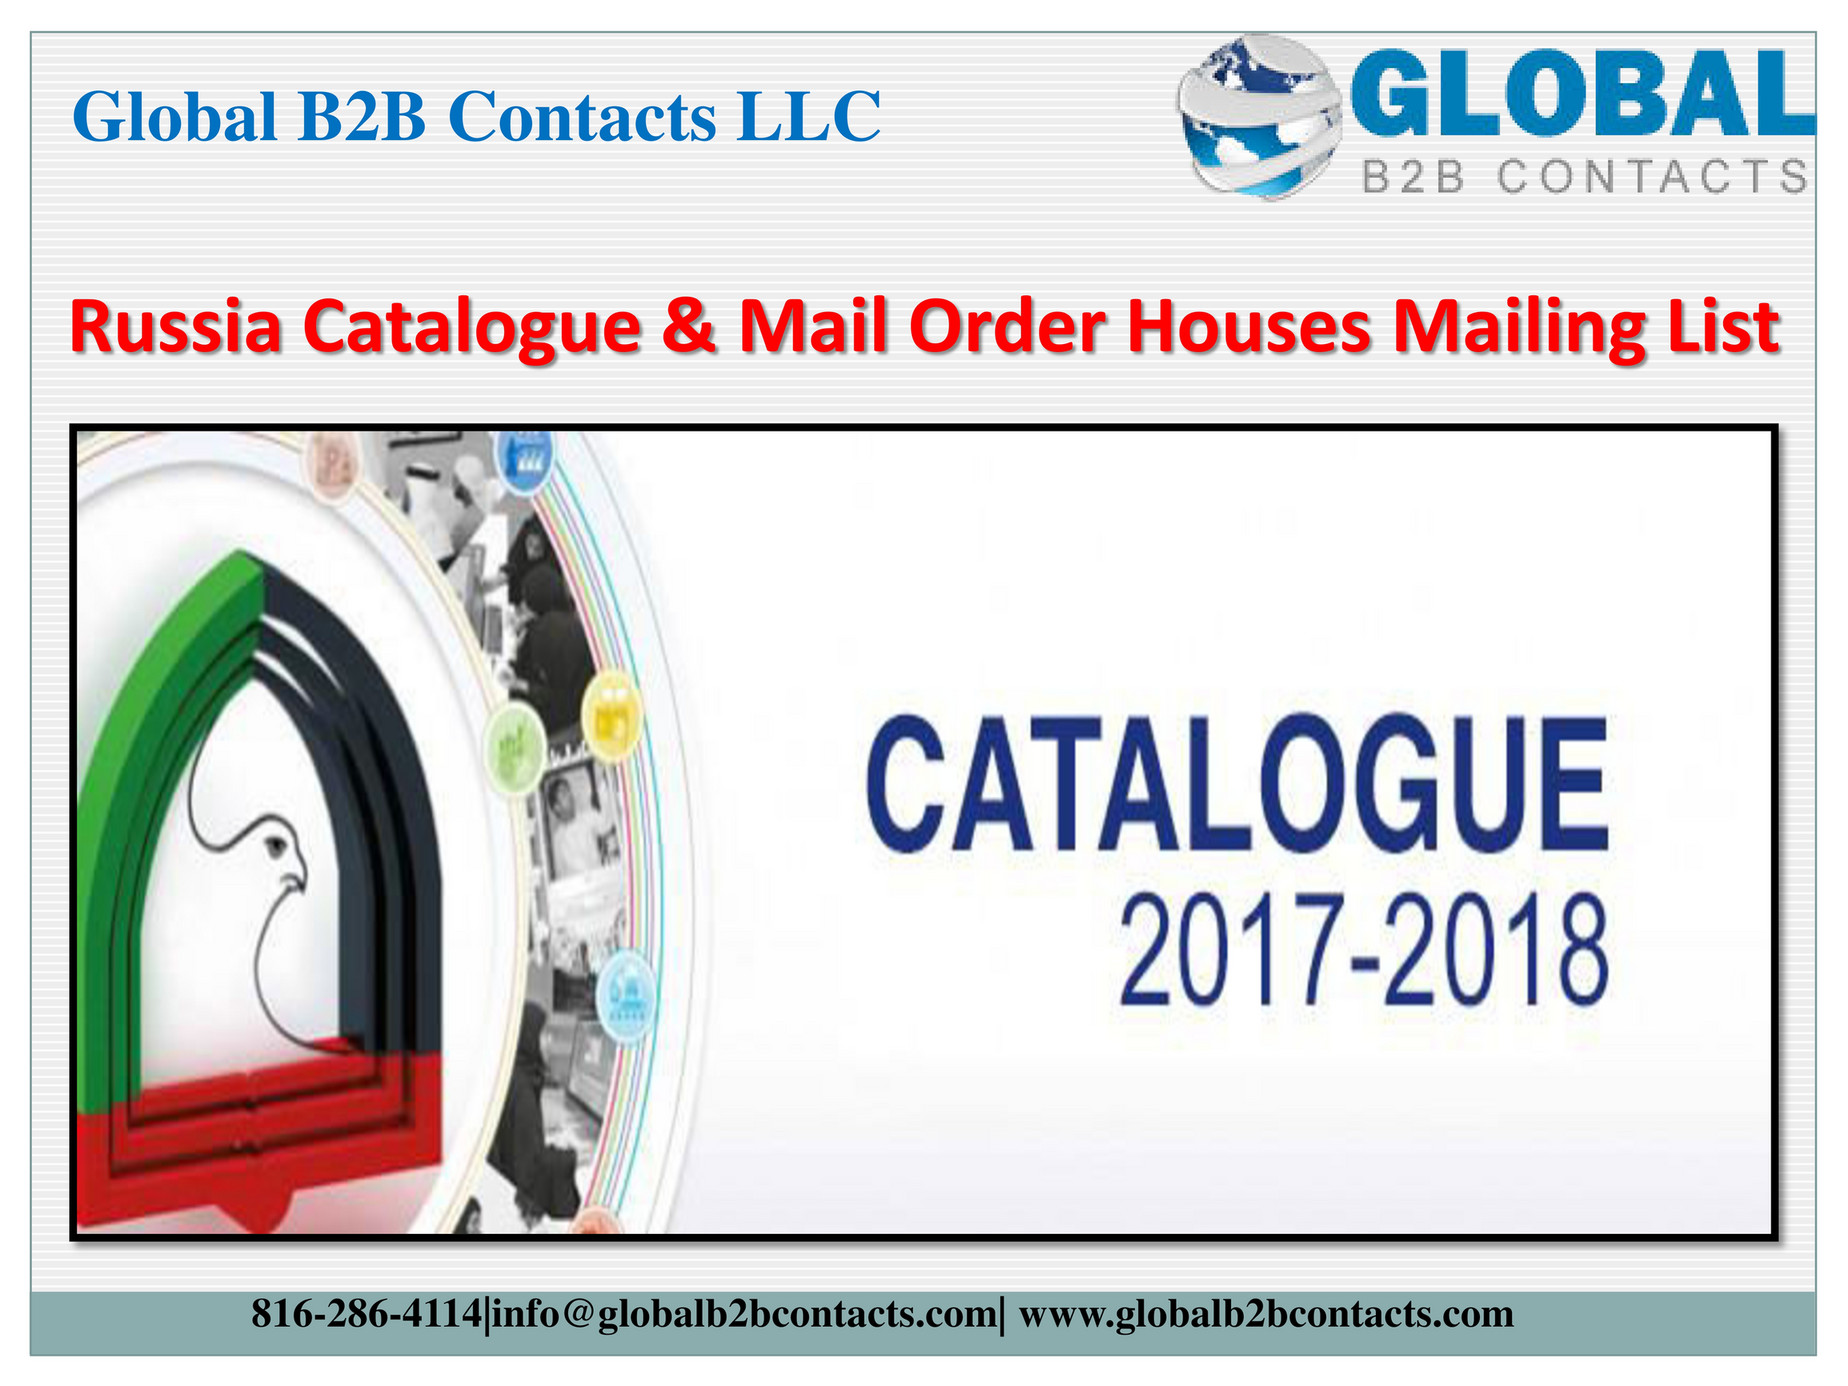 Globalb2bcontacts LLC - Russia Catalogue & Mail Order Houses Mailing